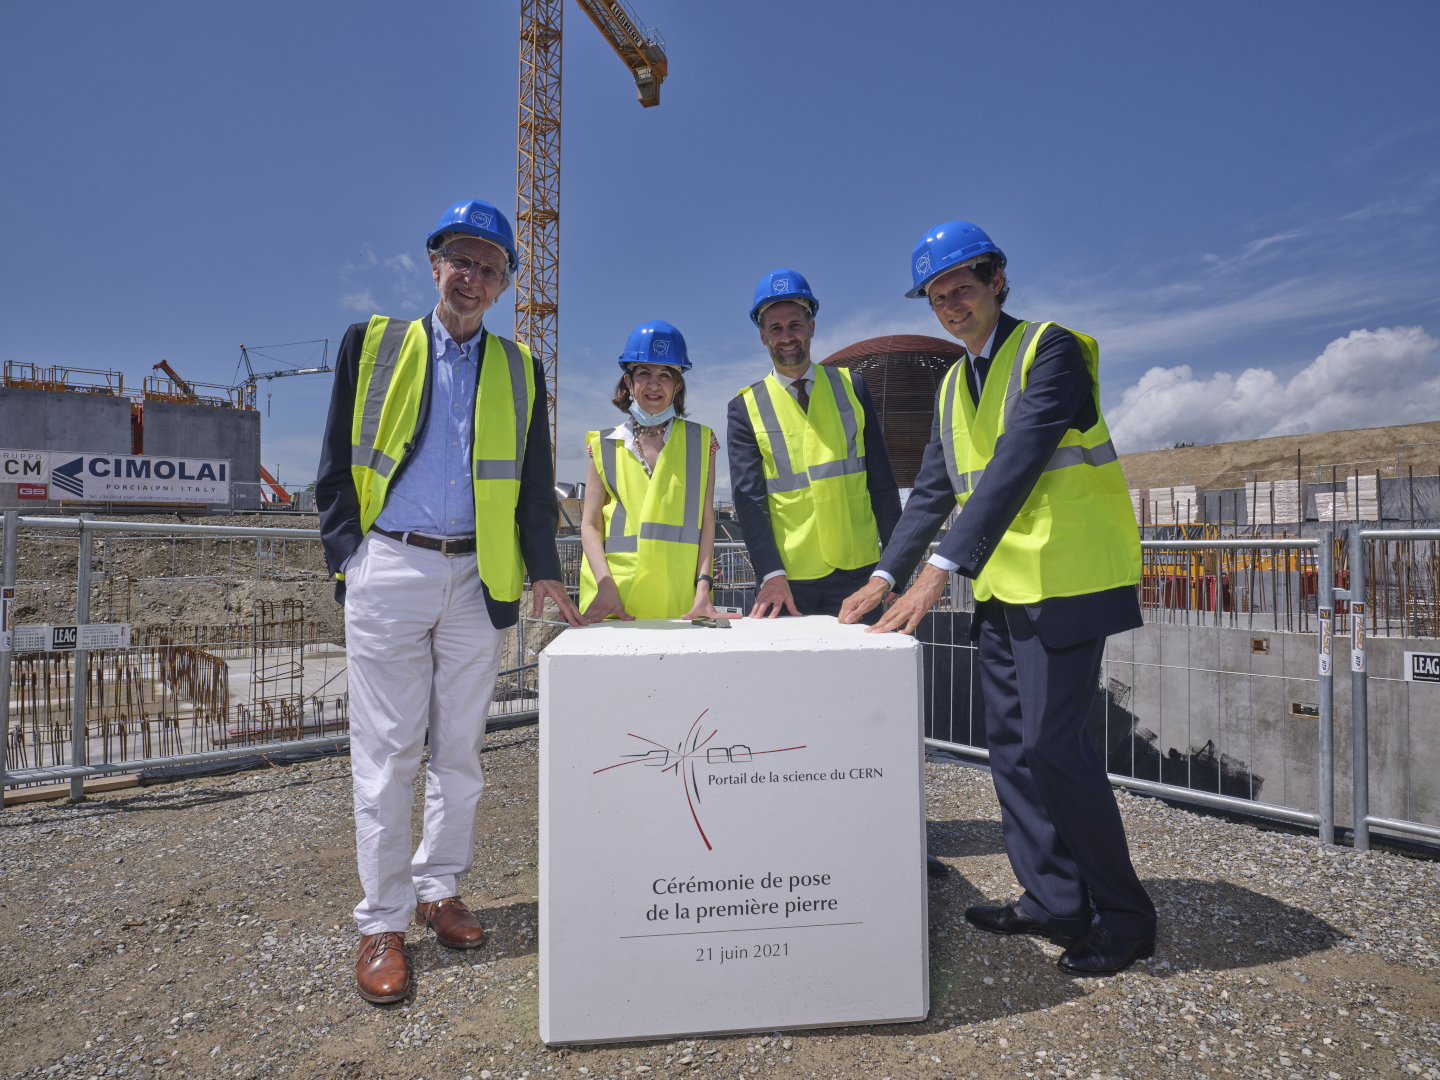 First Stone Ceremony for Science Gateway